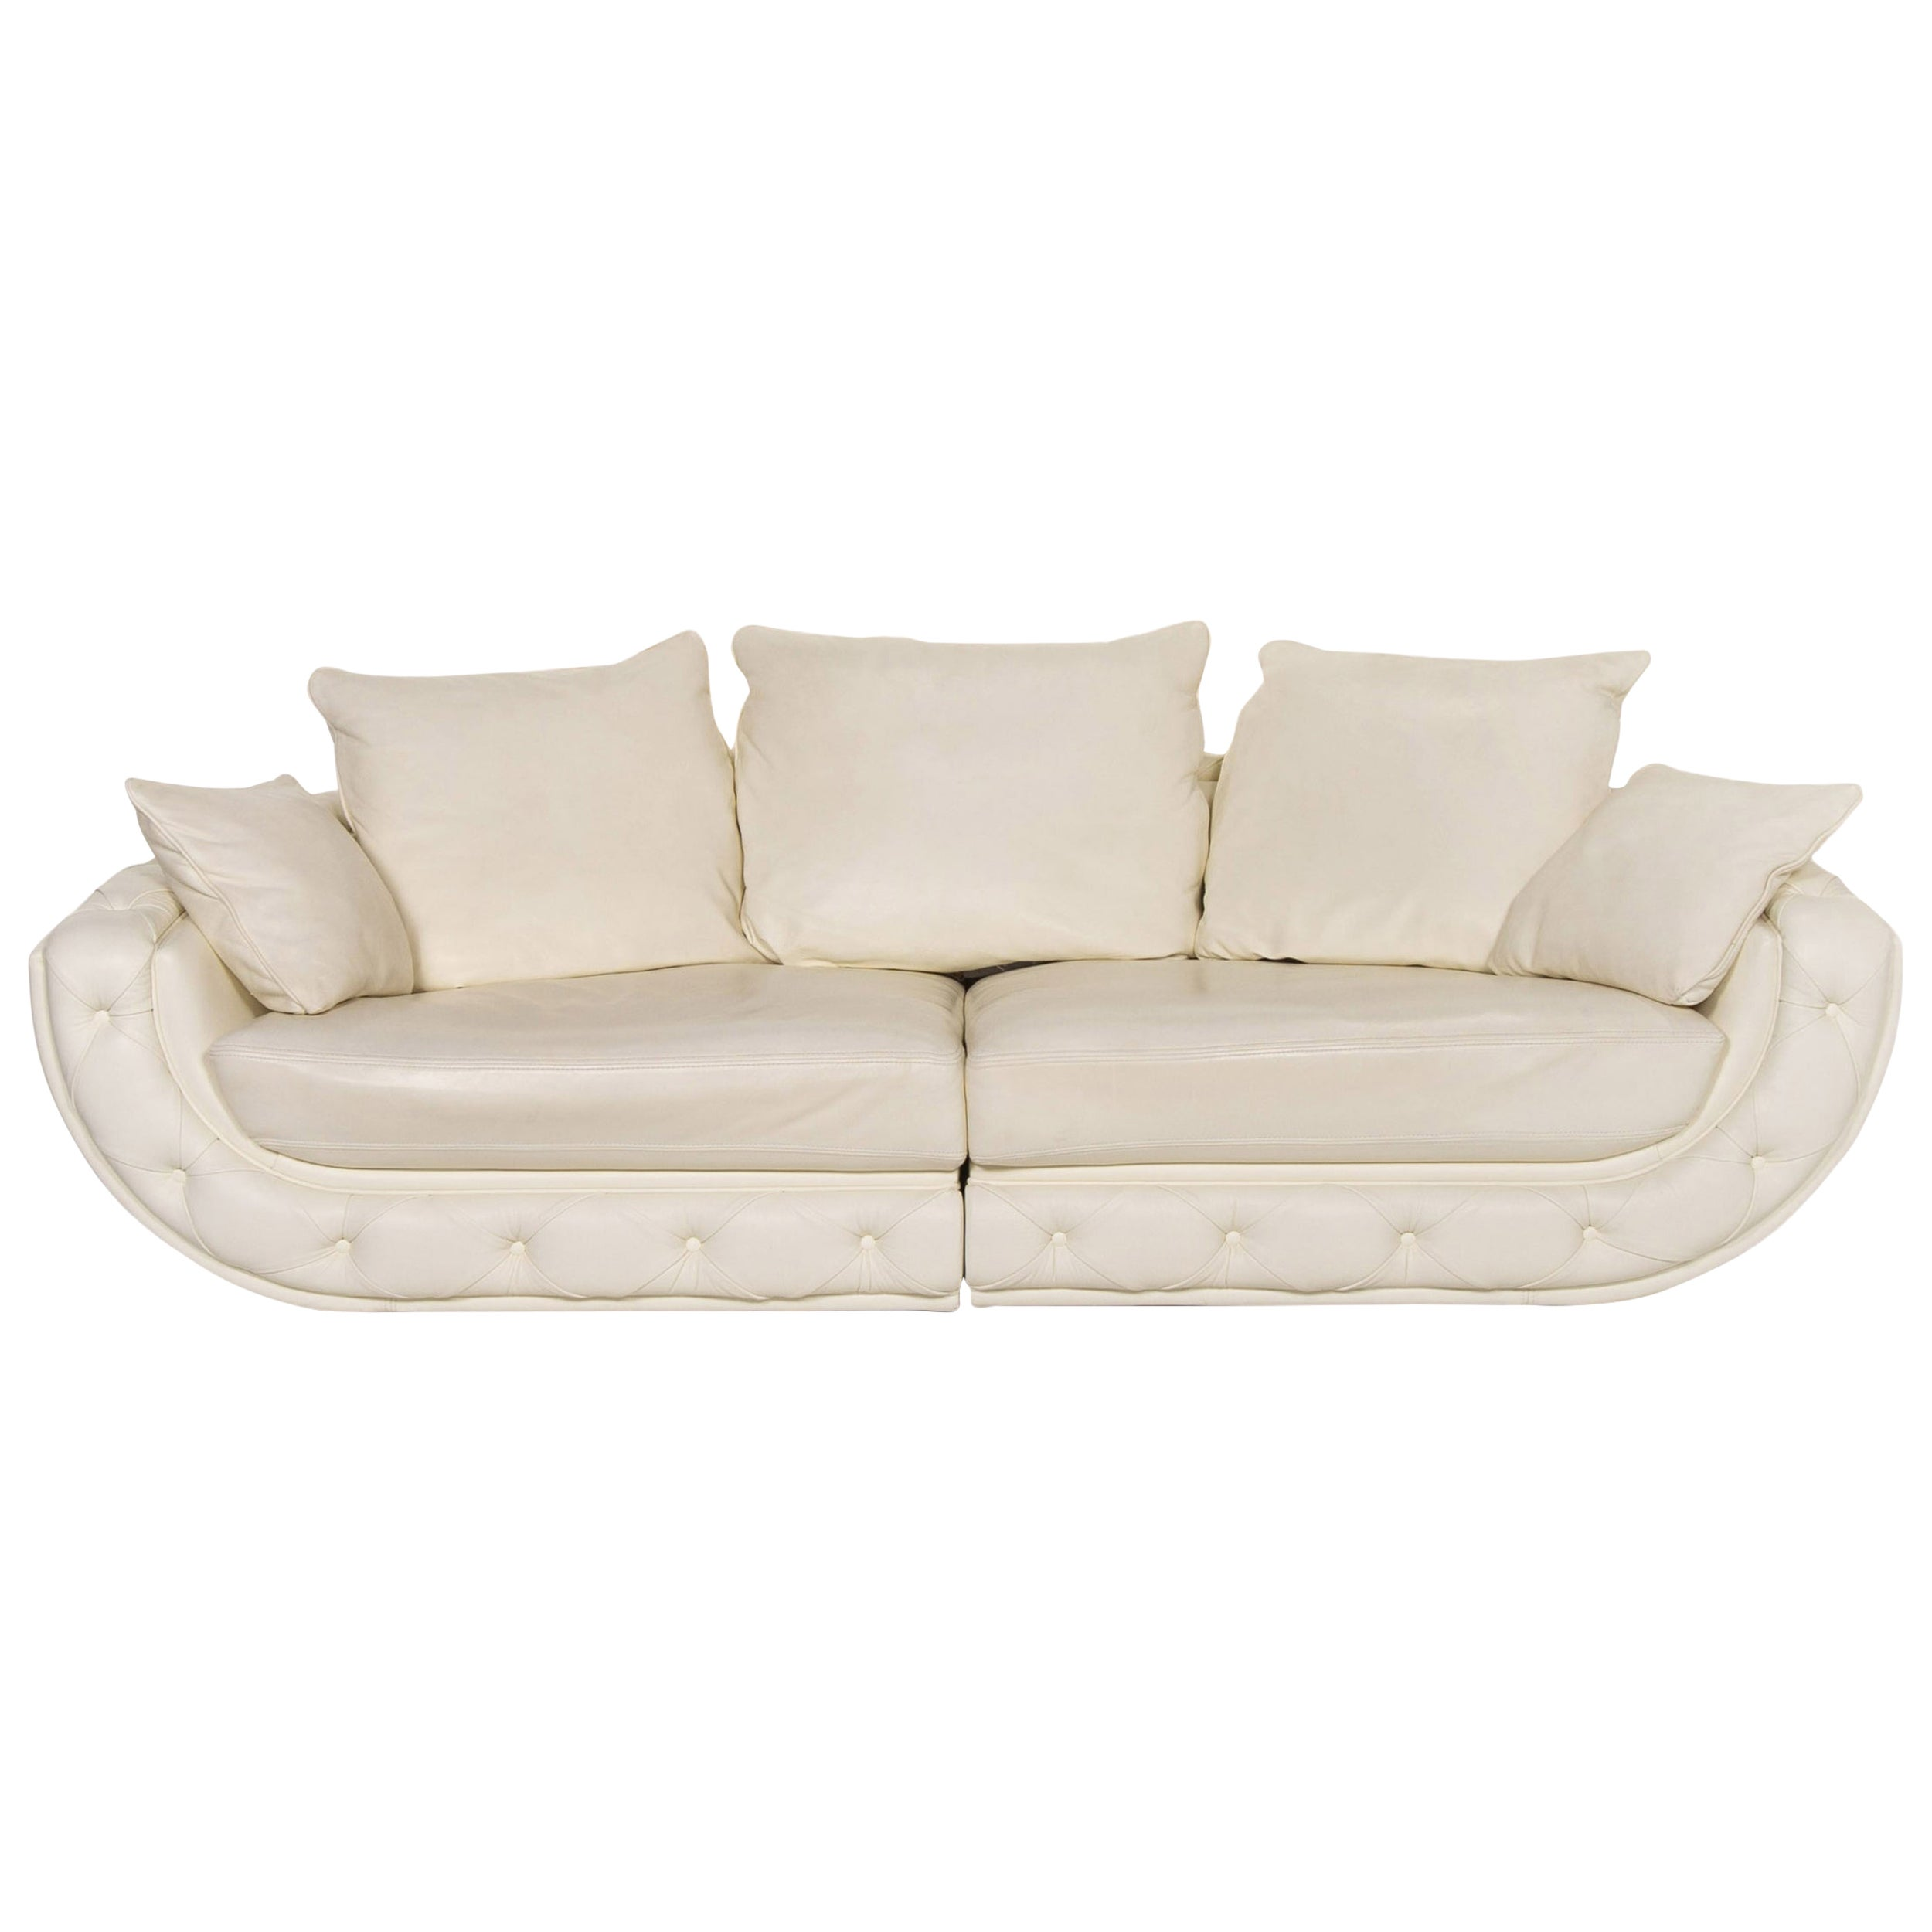 Nieri Leather Sofa Cream Four-Seat Couch